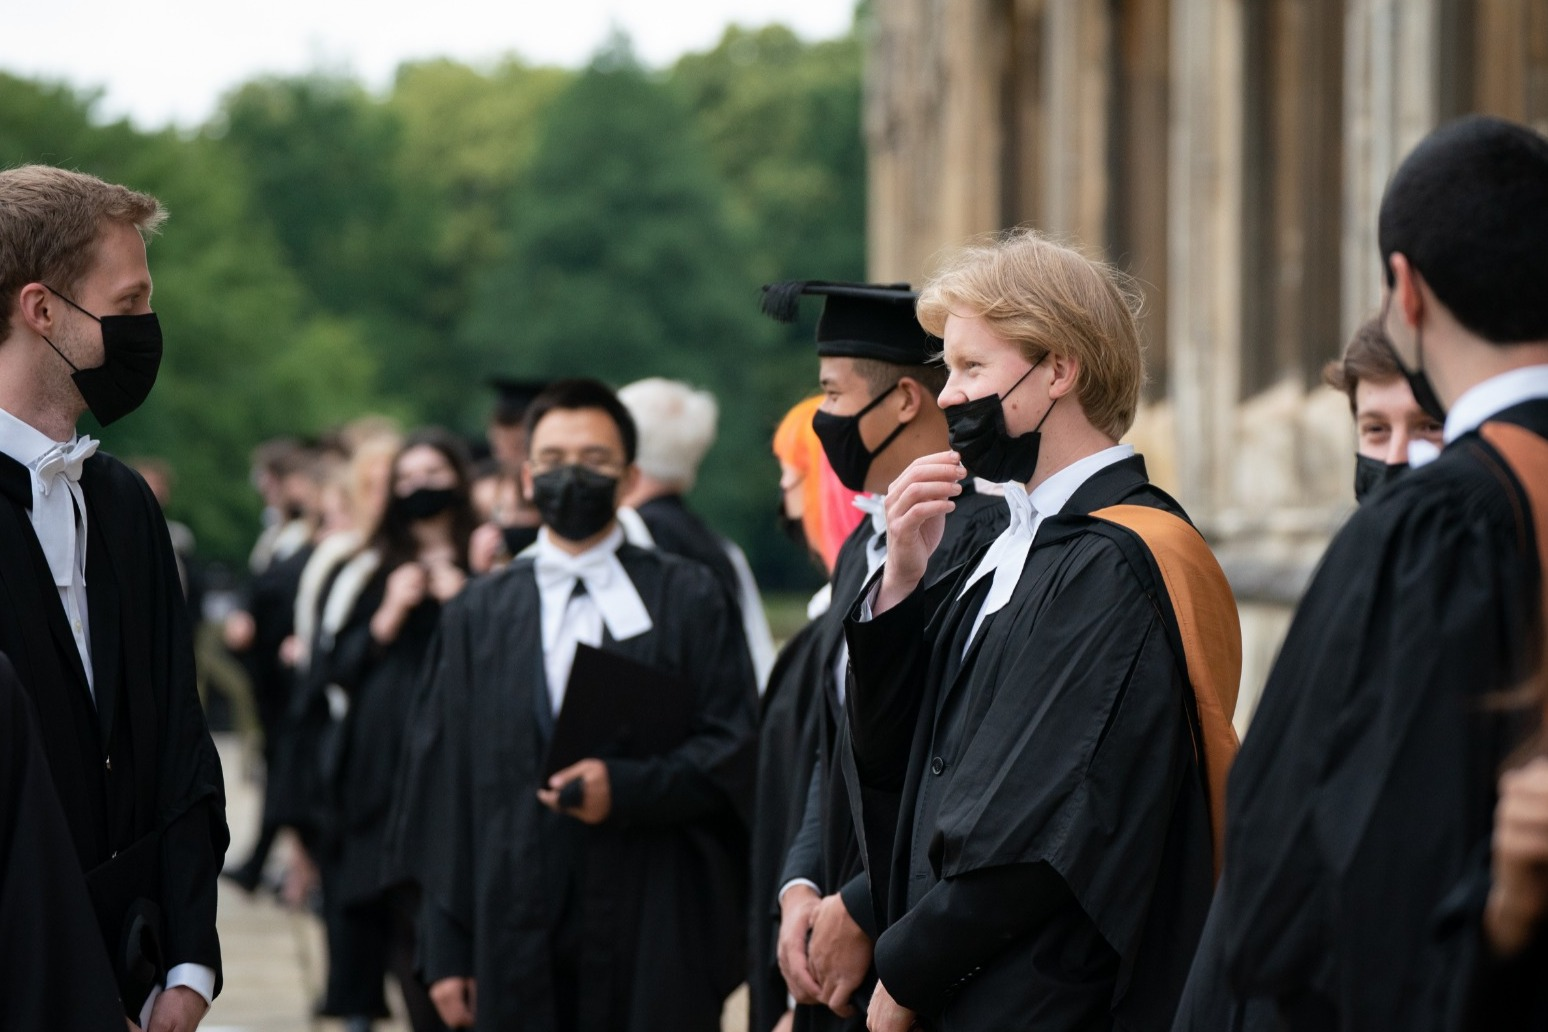 Six in 10 (61%) students feel money worries are affecting their mental health